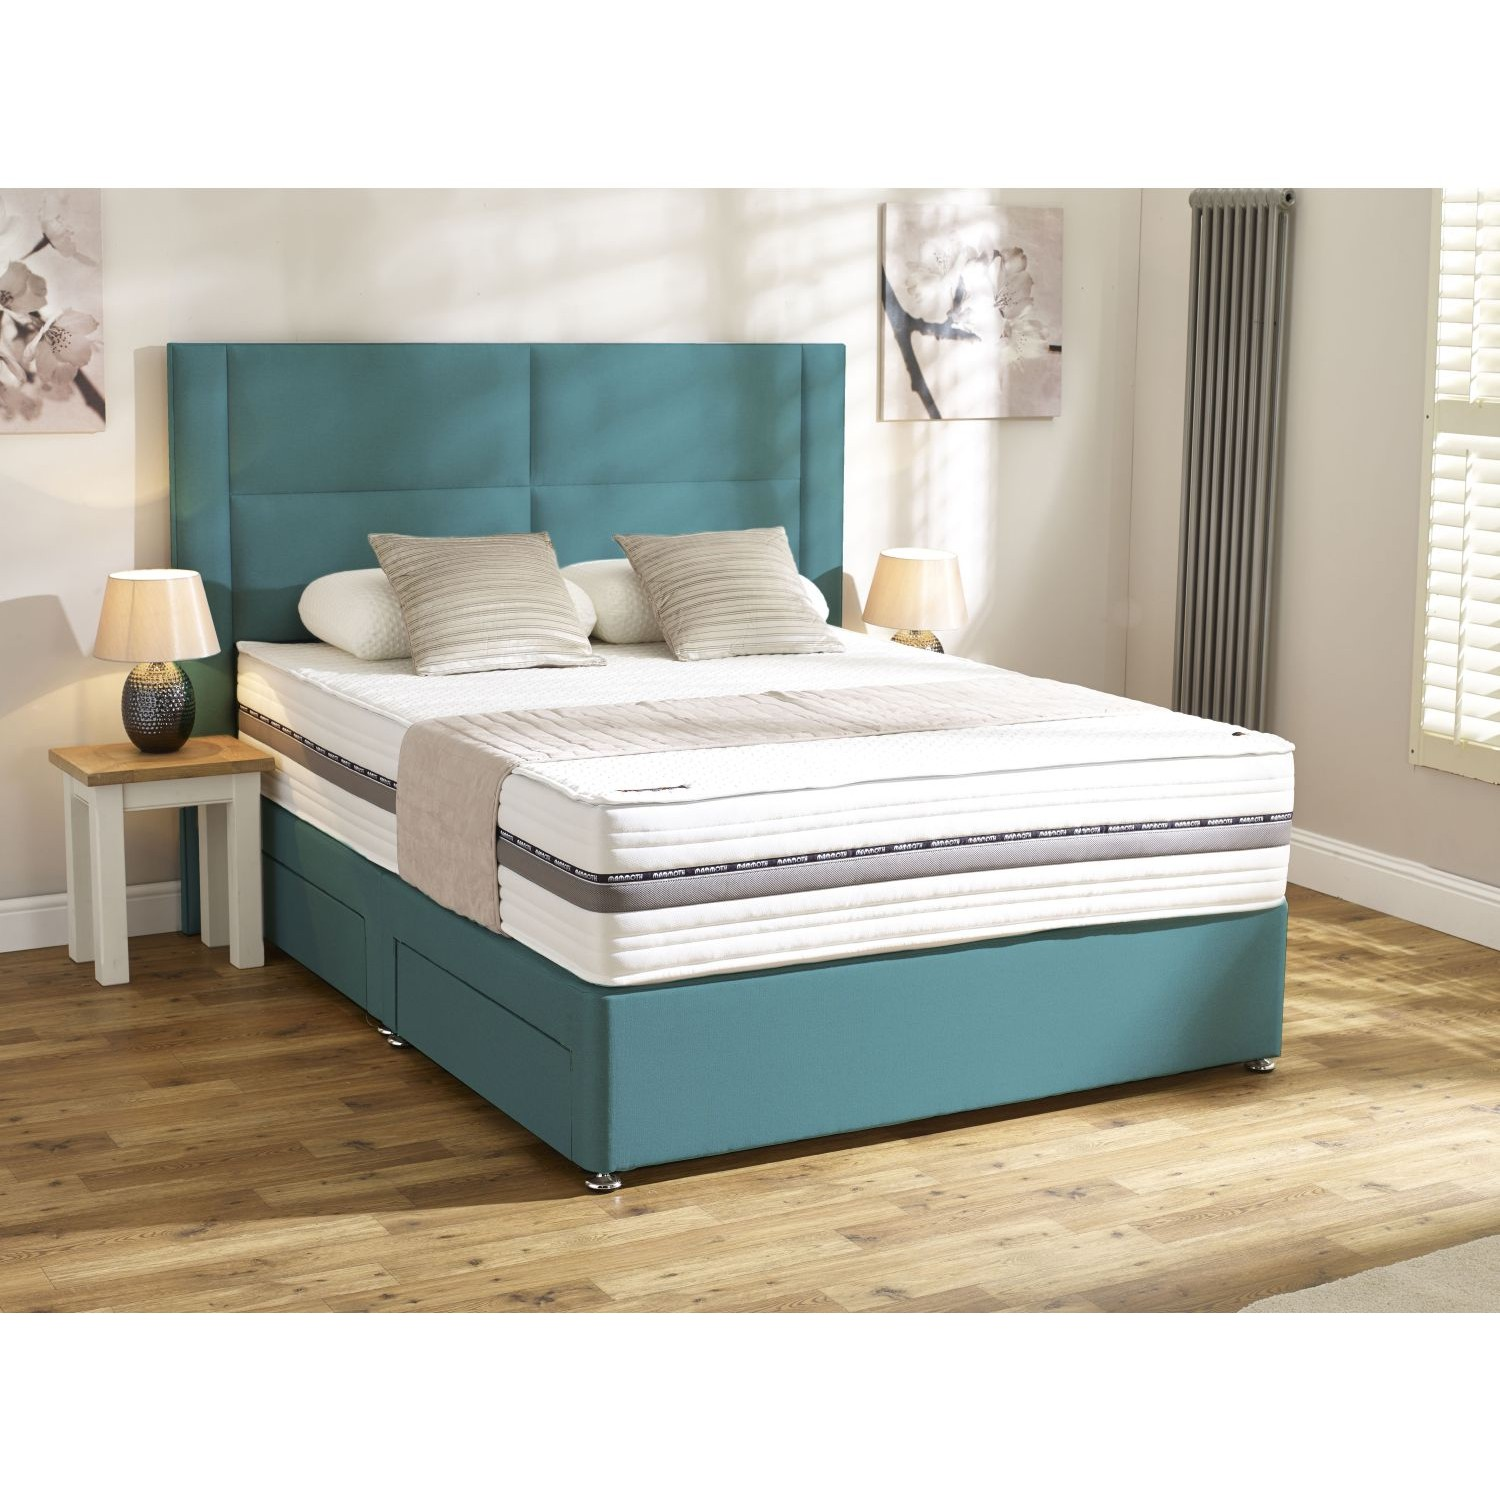 Mammoth performance pocket 2000 king 4 drawer divan leekes for Cheap double divan with drawers